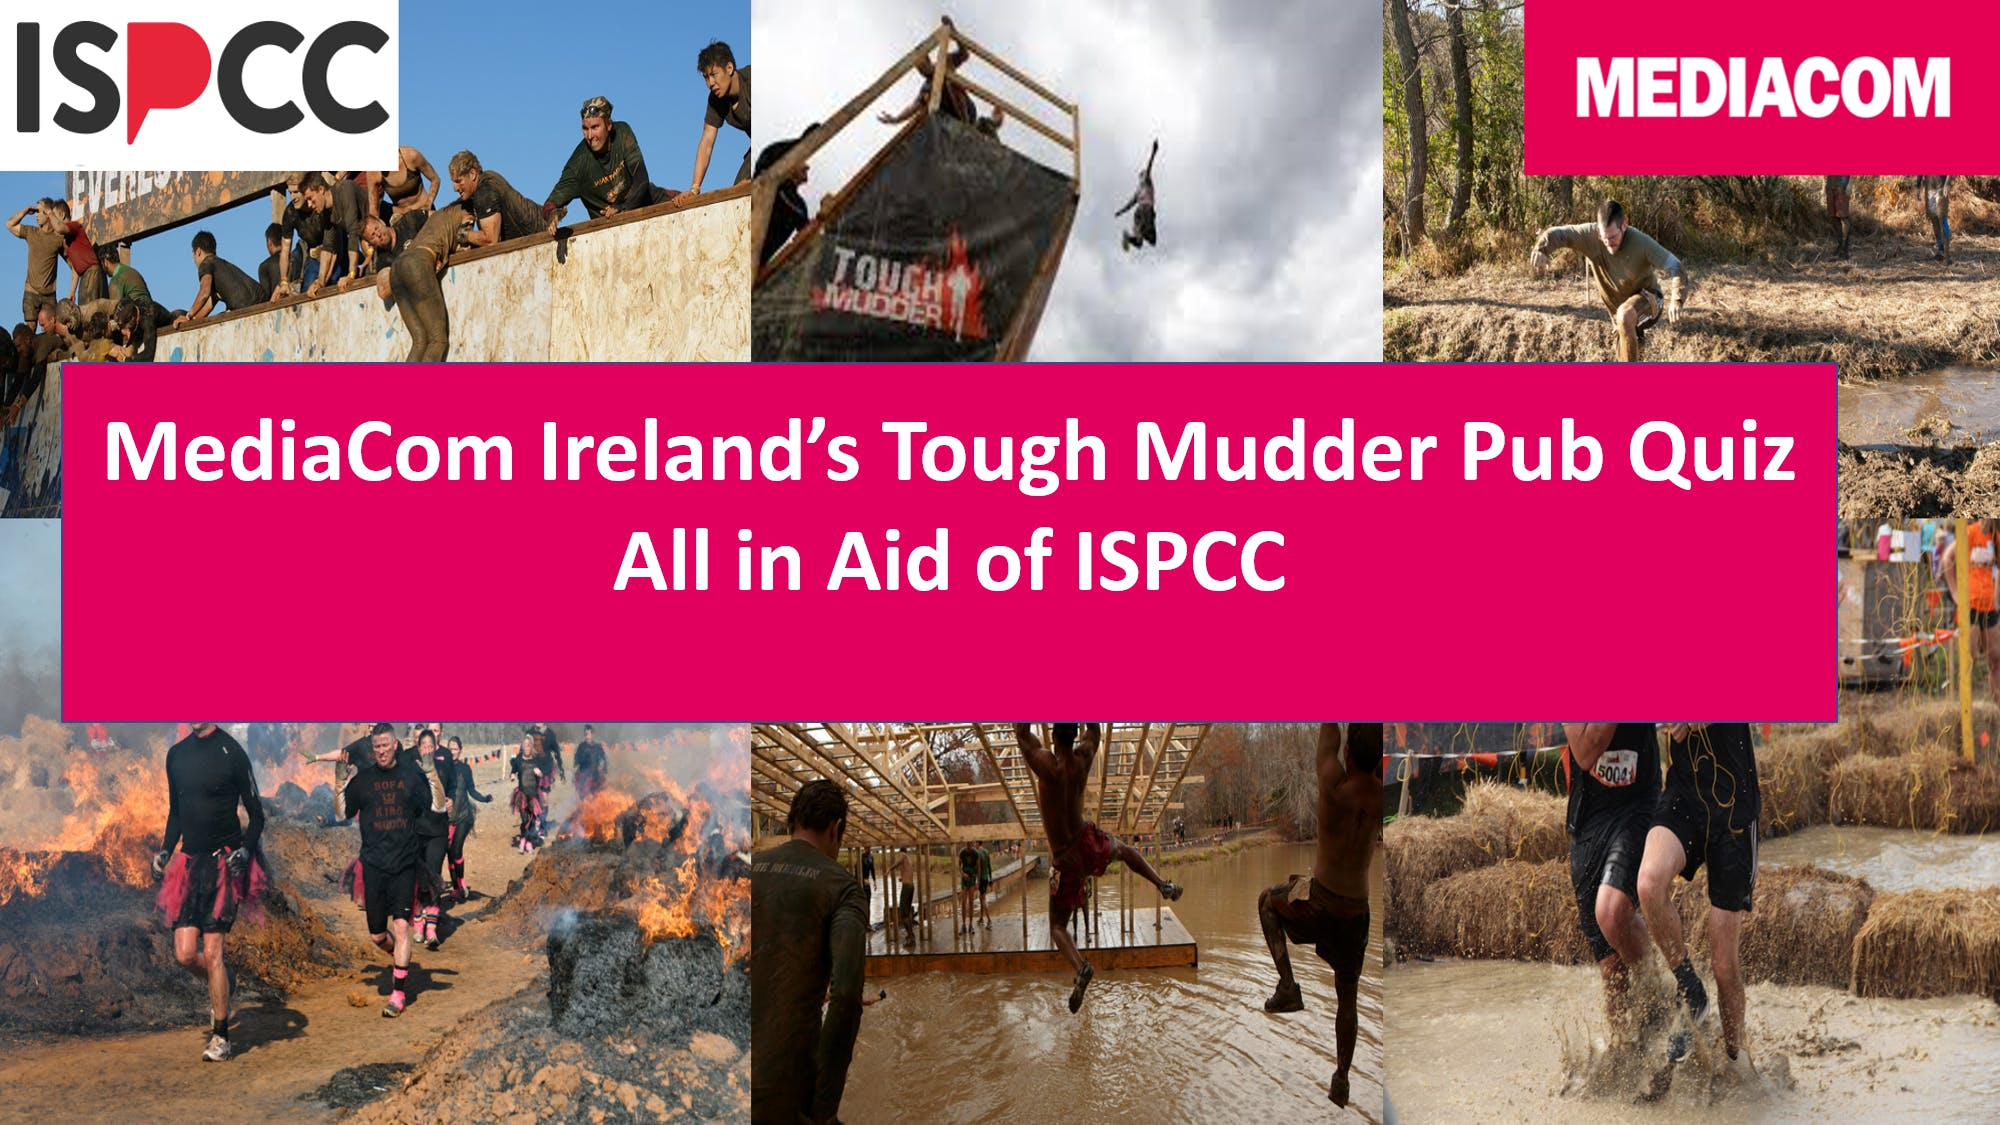 MediaCom Ireland's Tough Mudder Quiz in aid of ISPCC